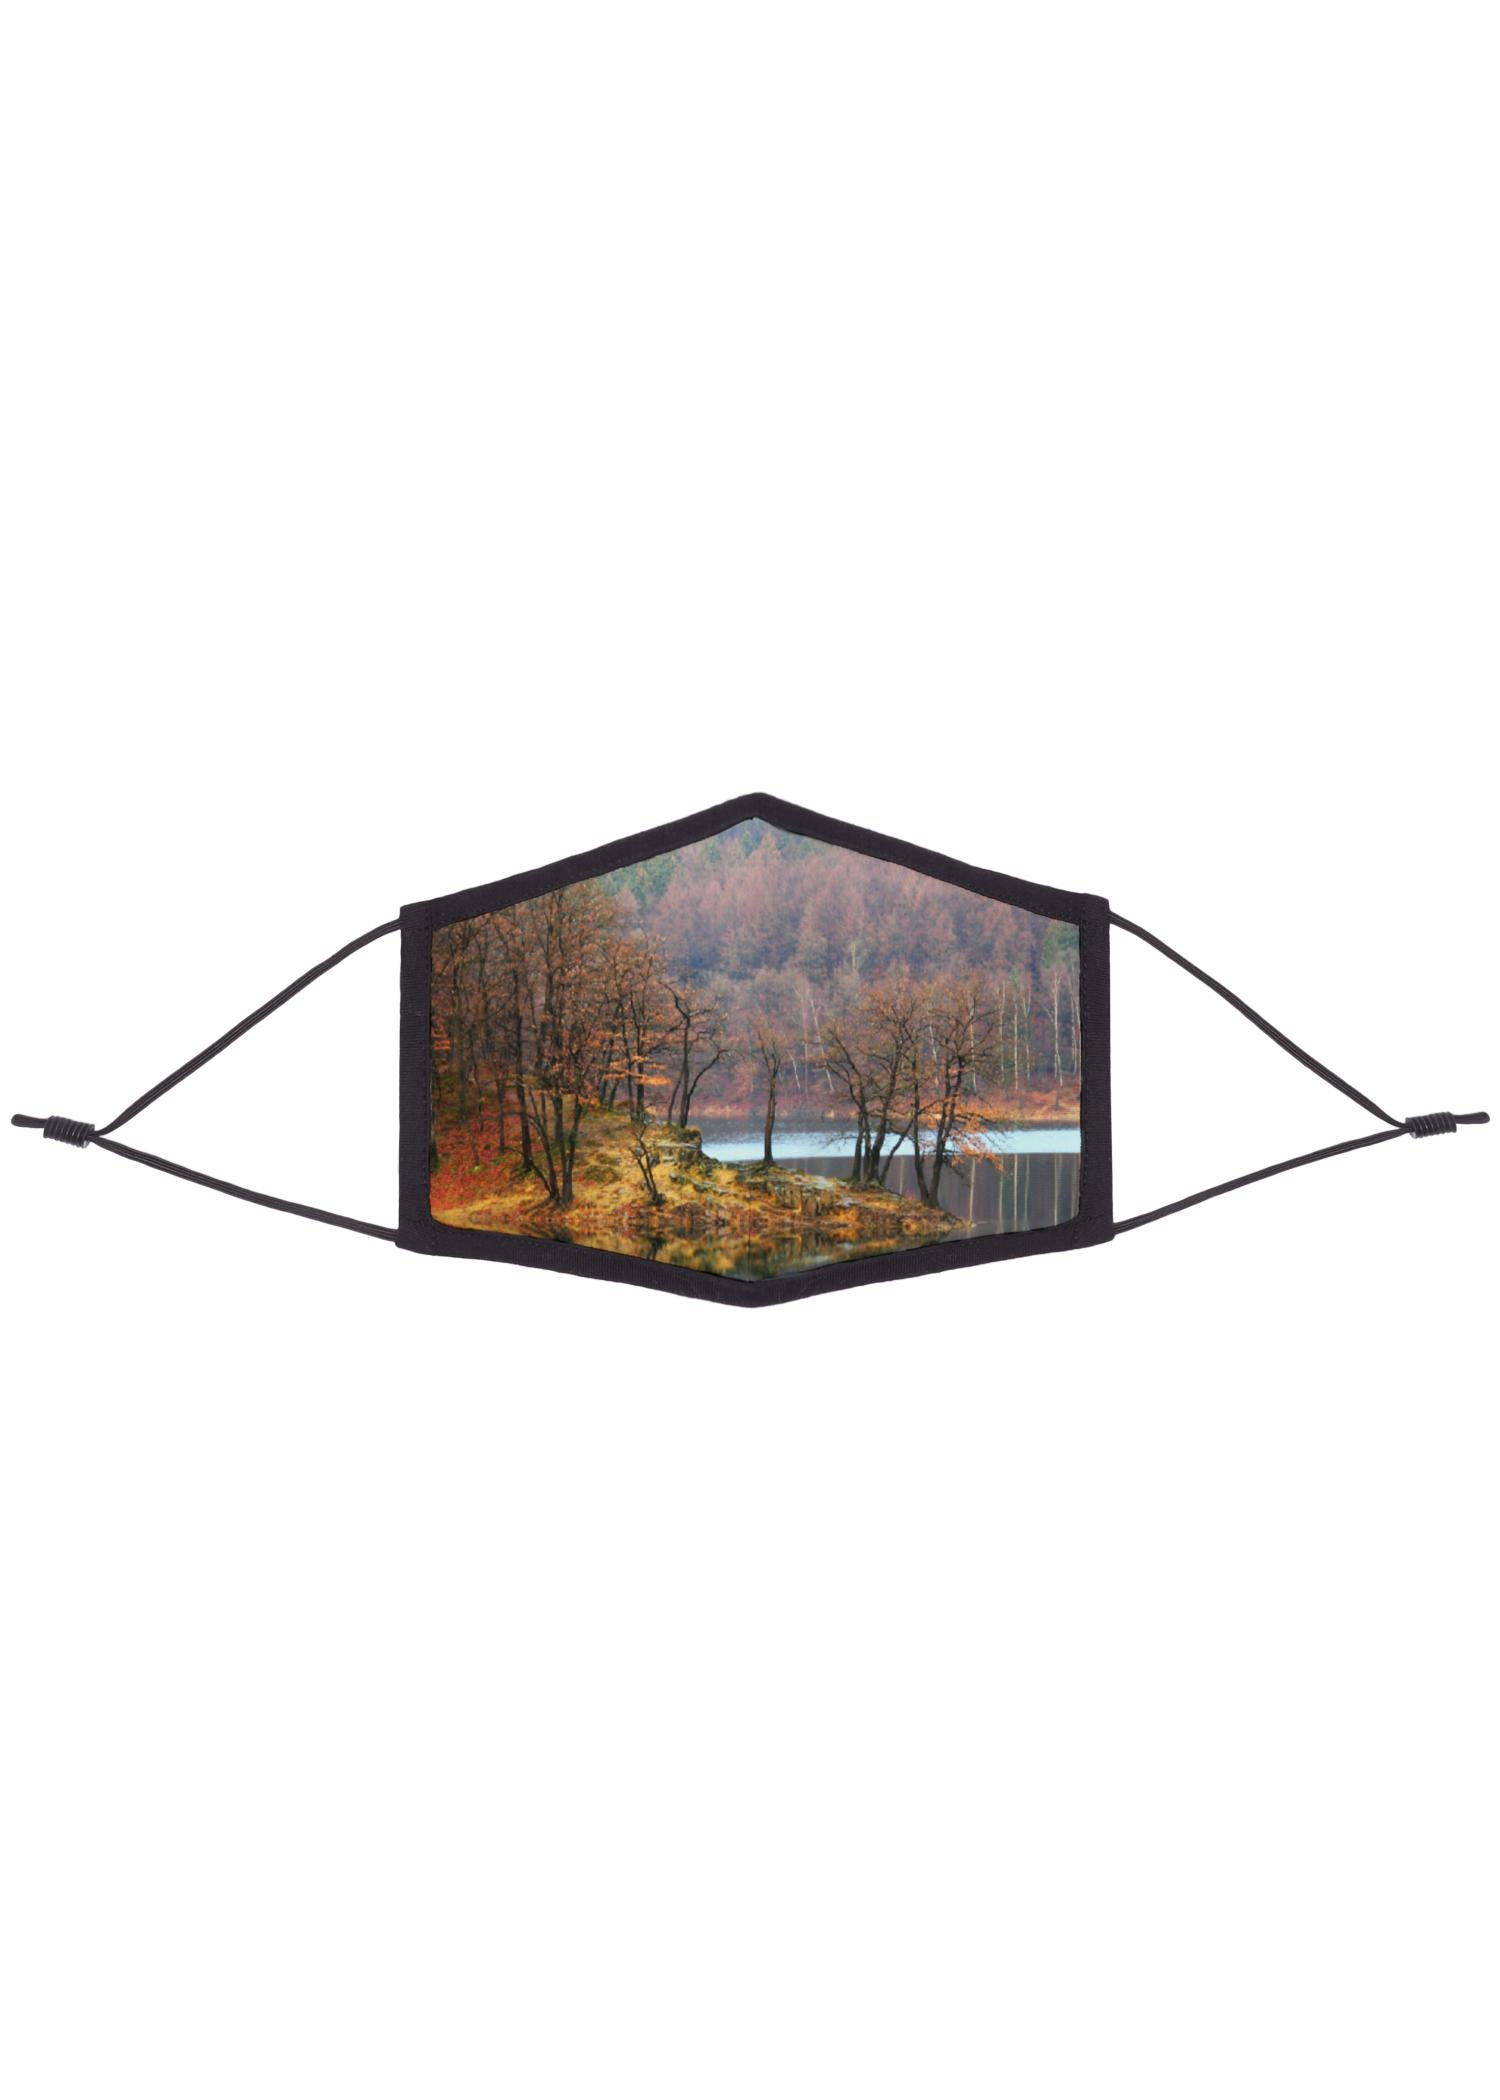 Eco REPREVE Mask - Artist Print Artwork:  Autumn Mirror Lake Trees Designed By: Christine Aka Stine1